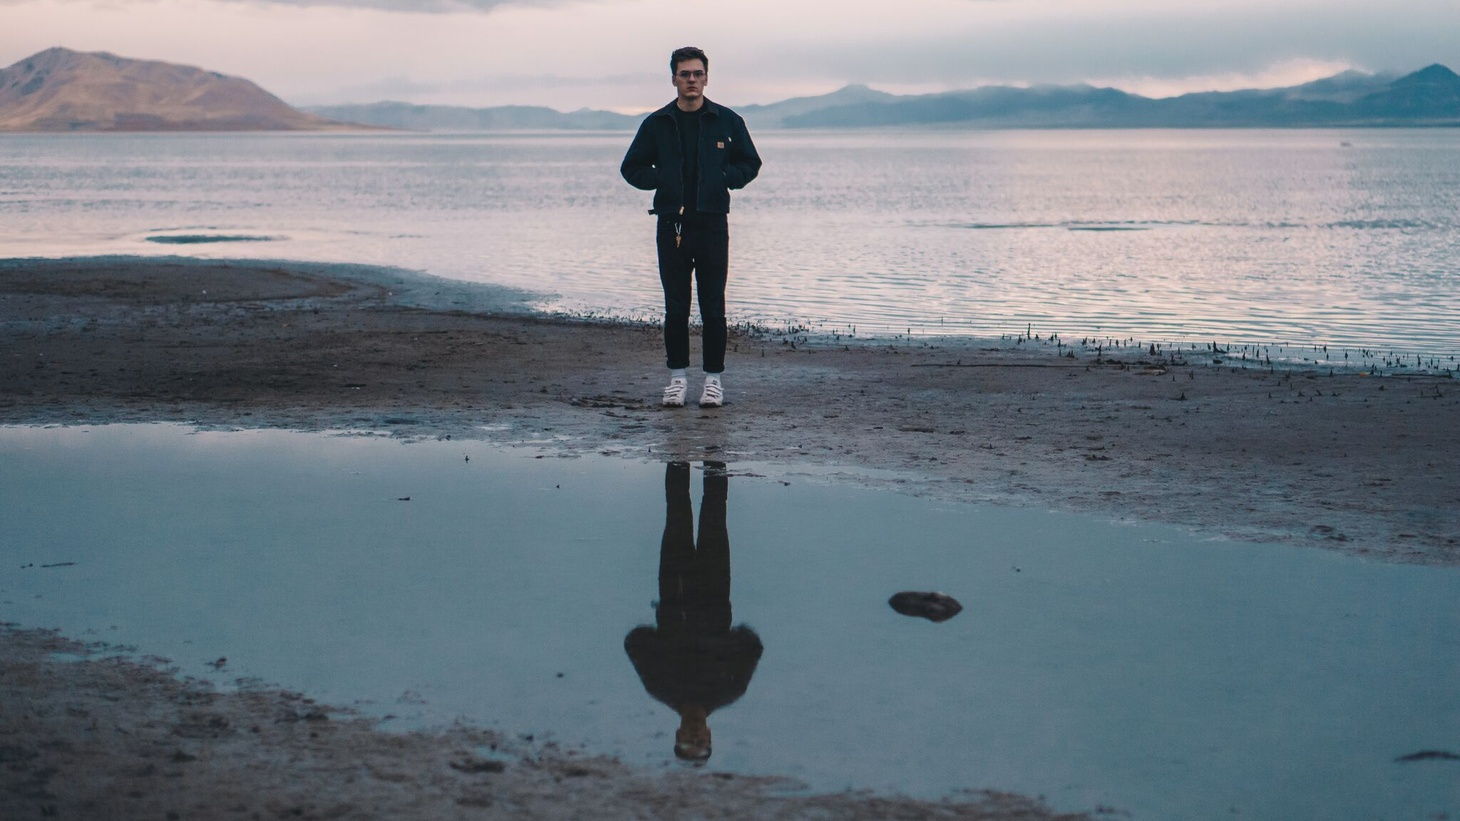 """Luc Bradford aka ford.has traveled far and wide, with those experiences informing his diverse production palette. """"Warmth"""" is a sparkly song featuring Sophie Meiers on vocals."""